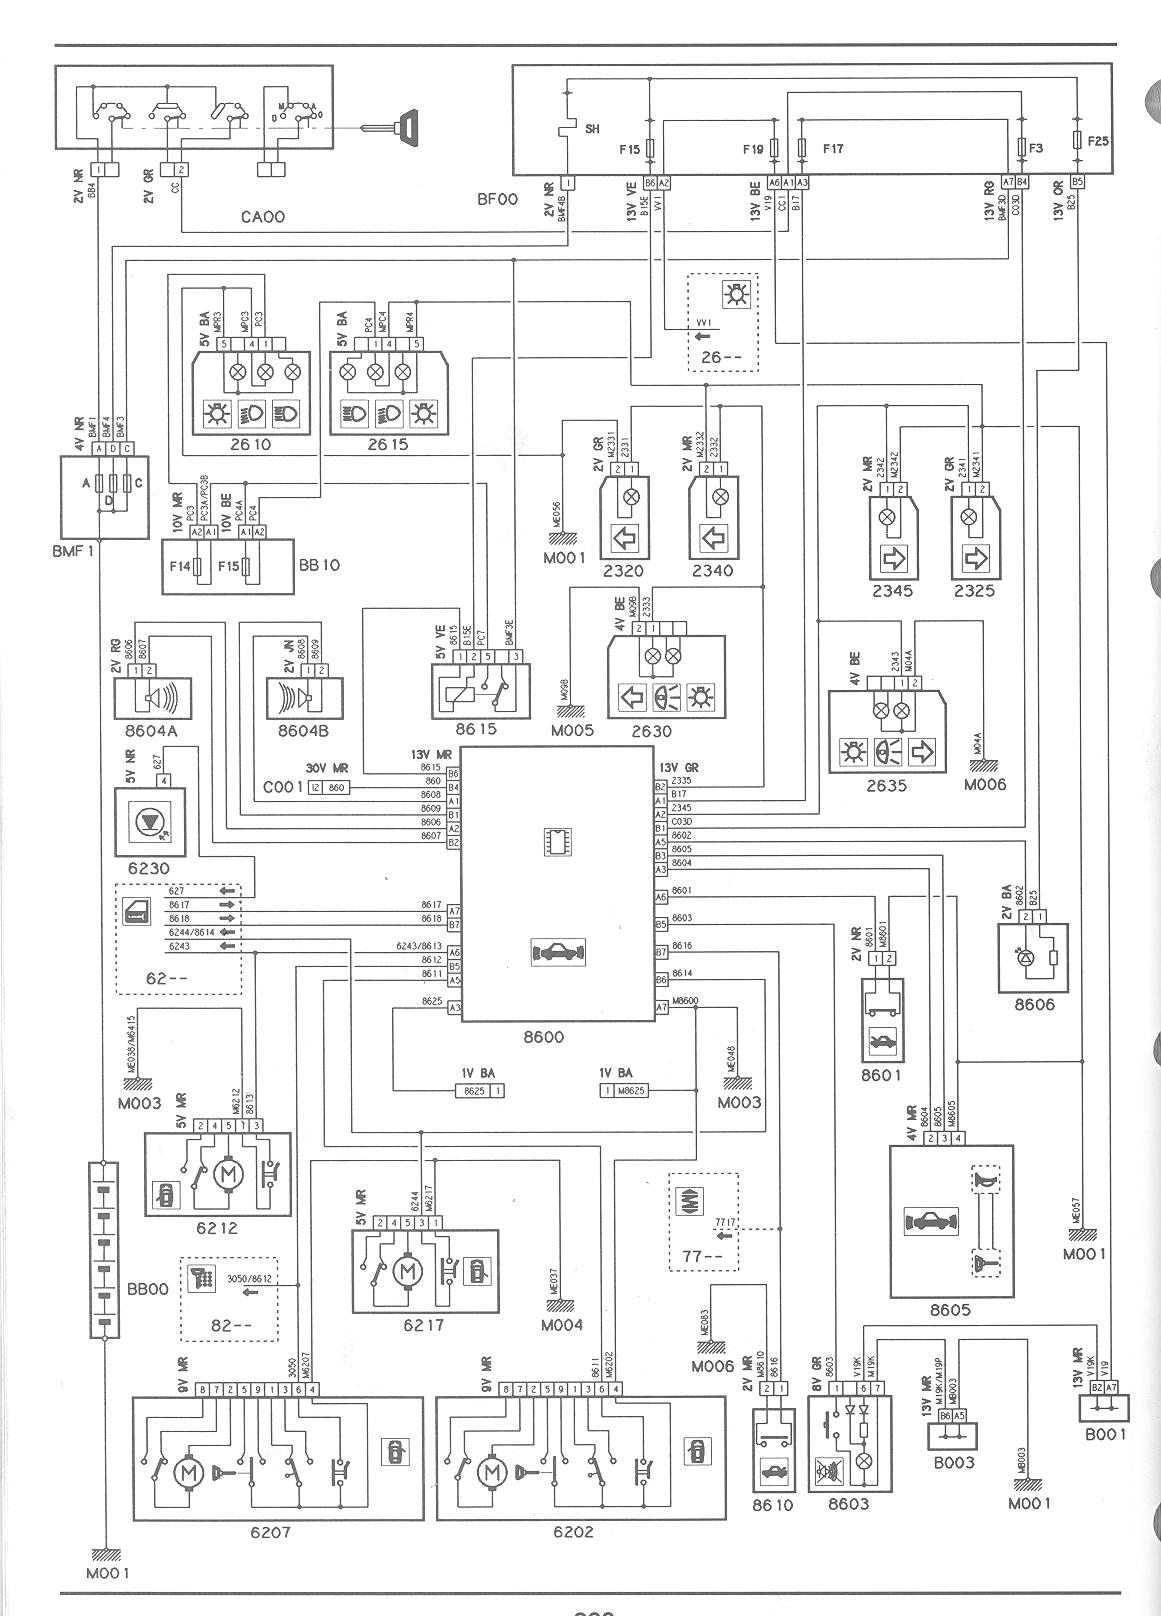 Wiring Diagram For Citroen Dispatch Van Library Picasso Central Locking Example Electrical Berlingo